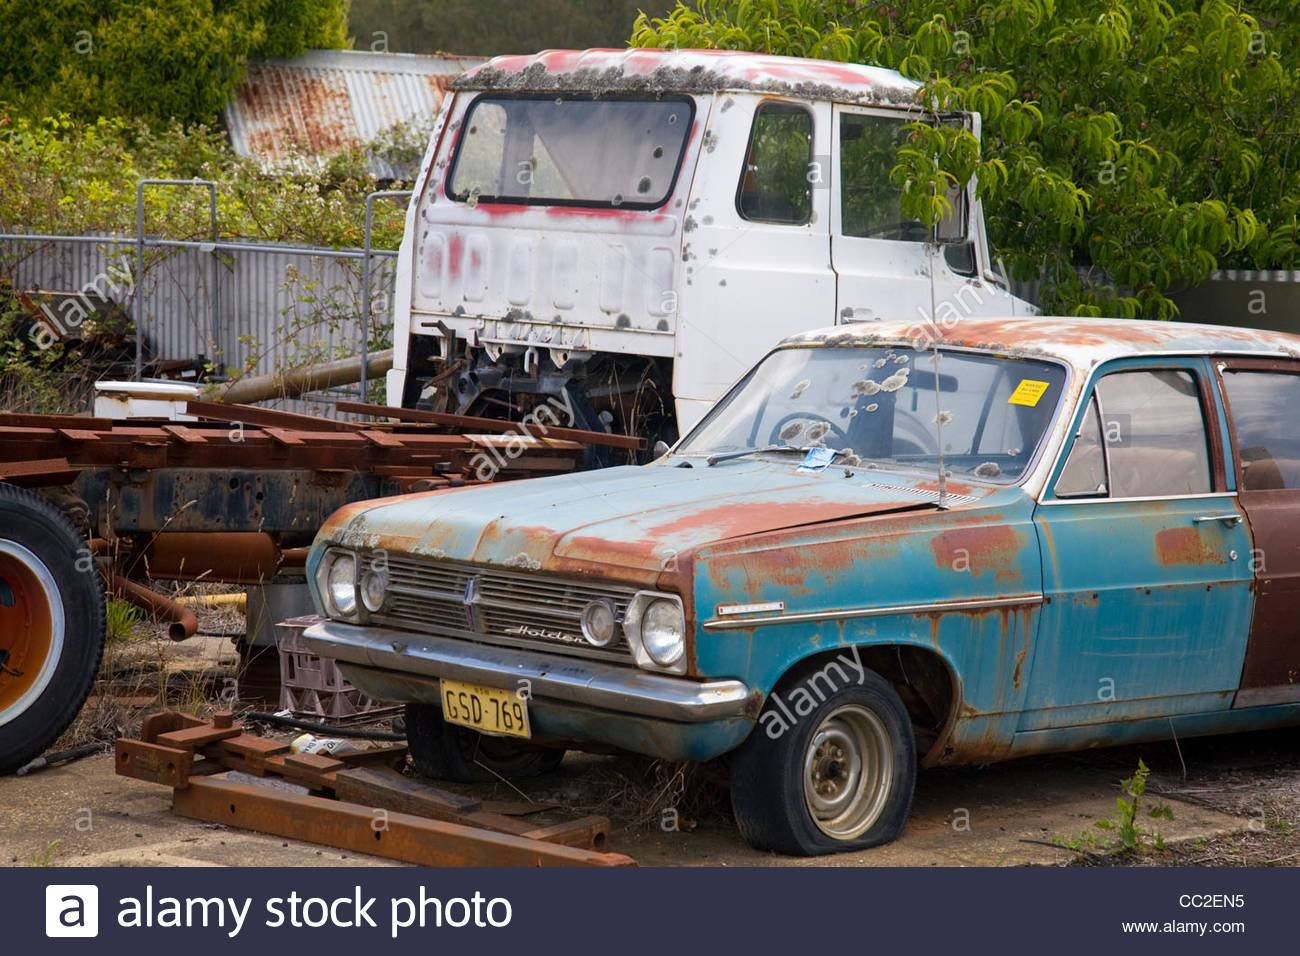 Latest Holden Car Stock Photos Holden Car Stock Images Alamy Free Download